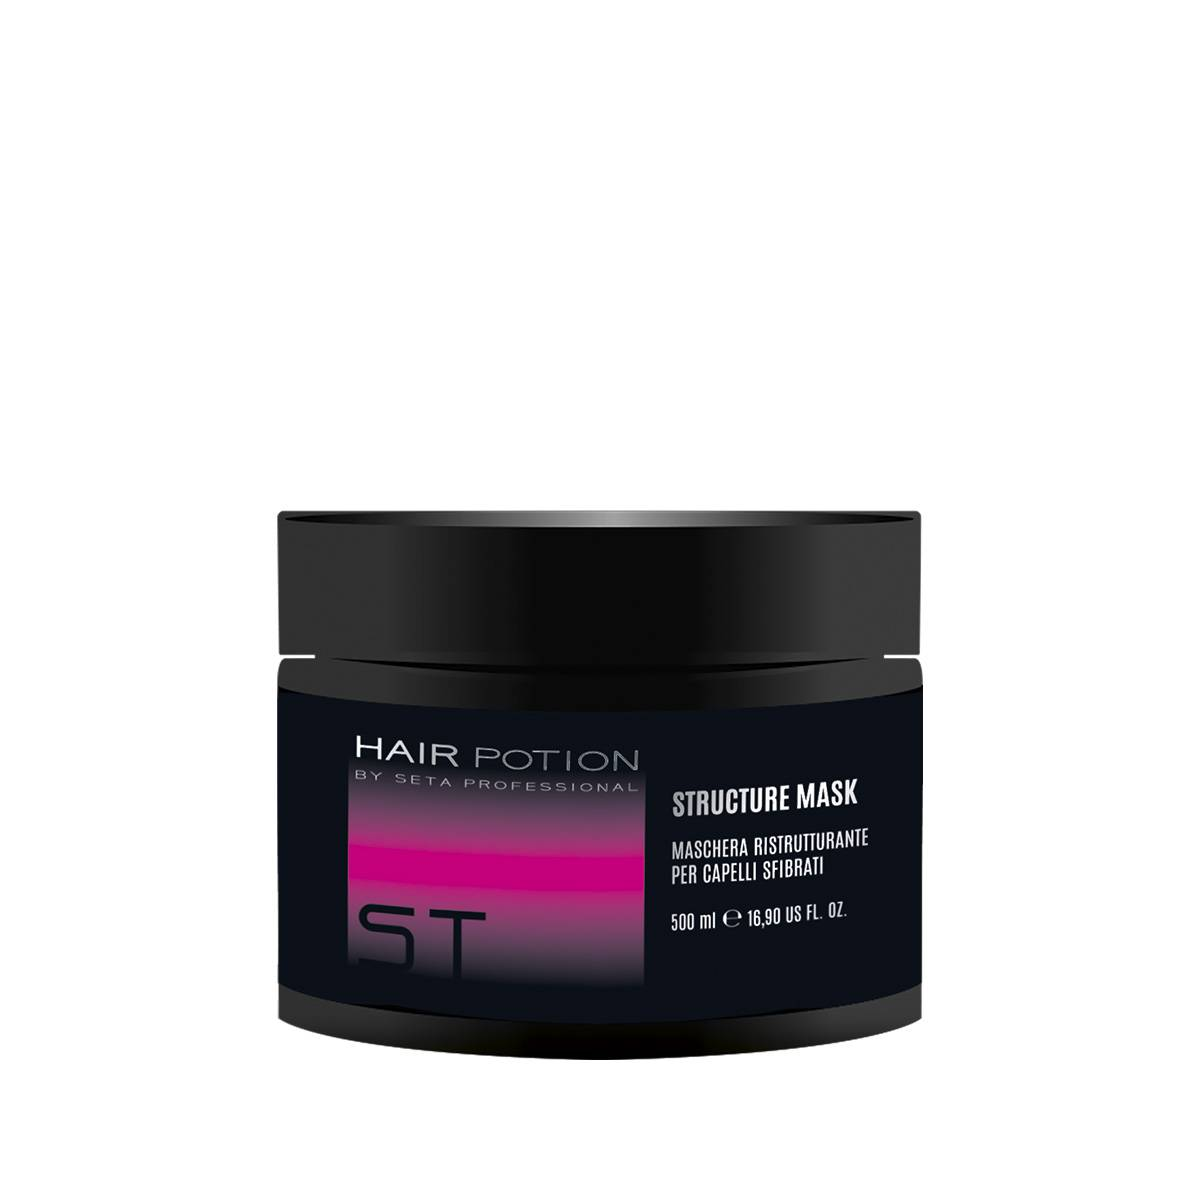 Hair Potion Pro Structure Mask 500ml